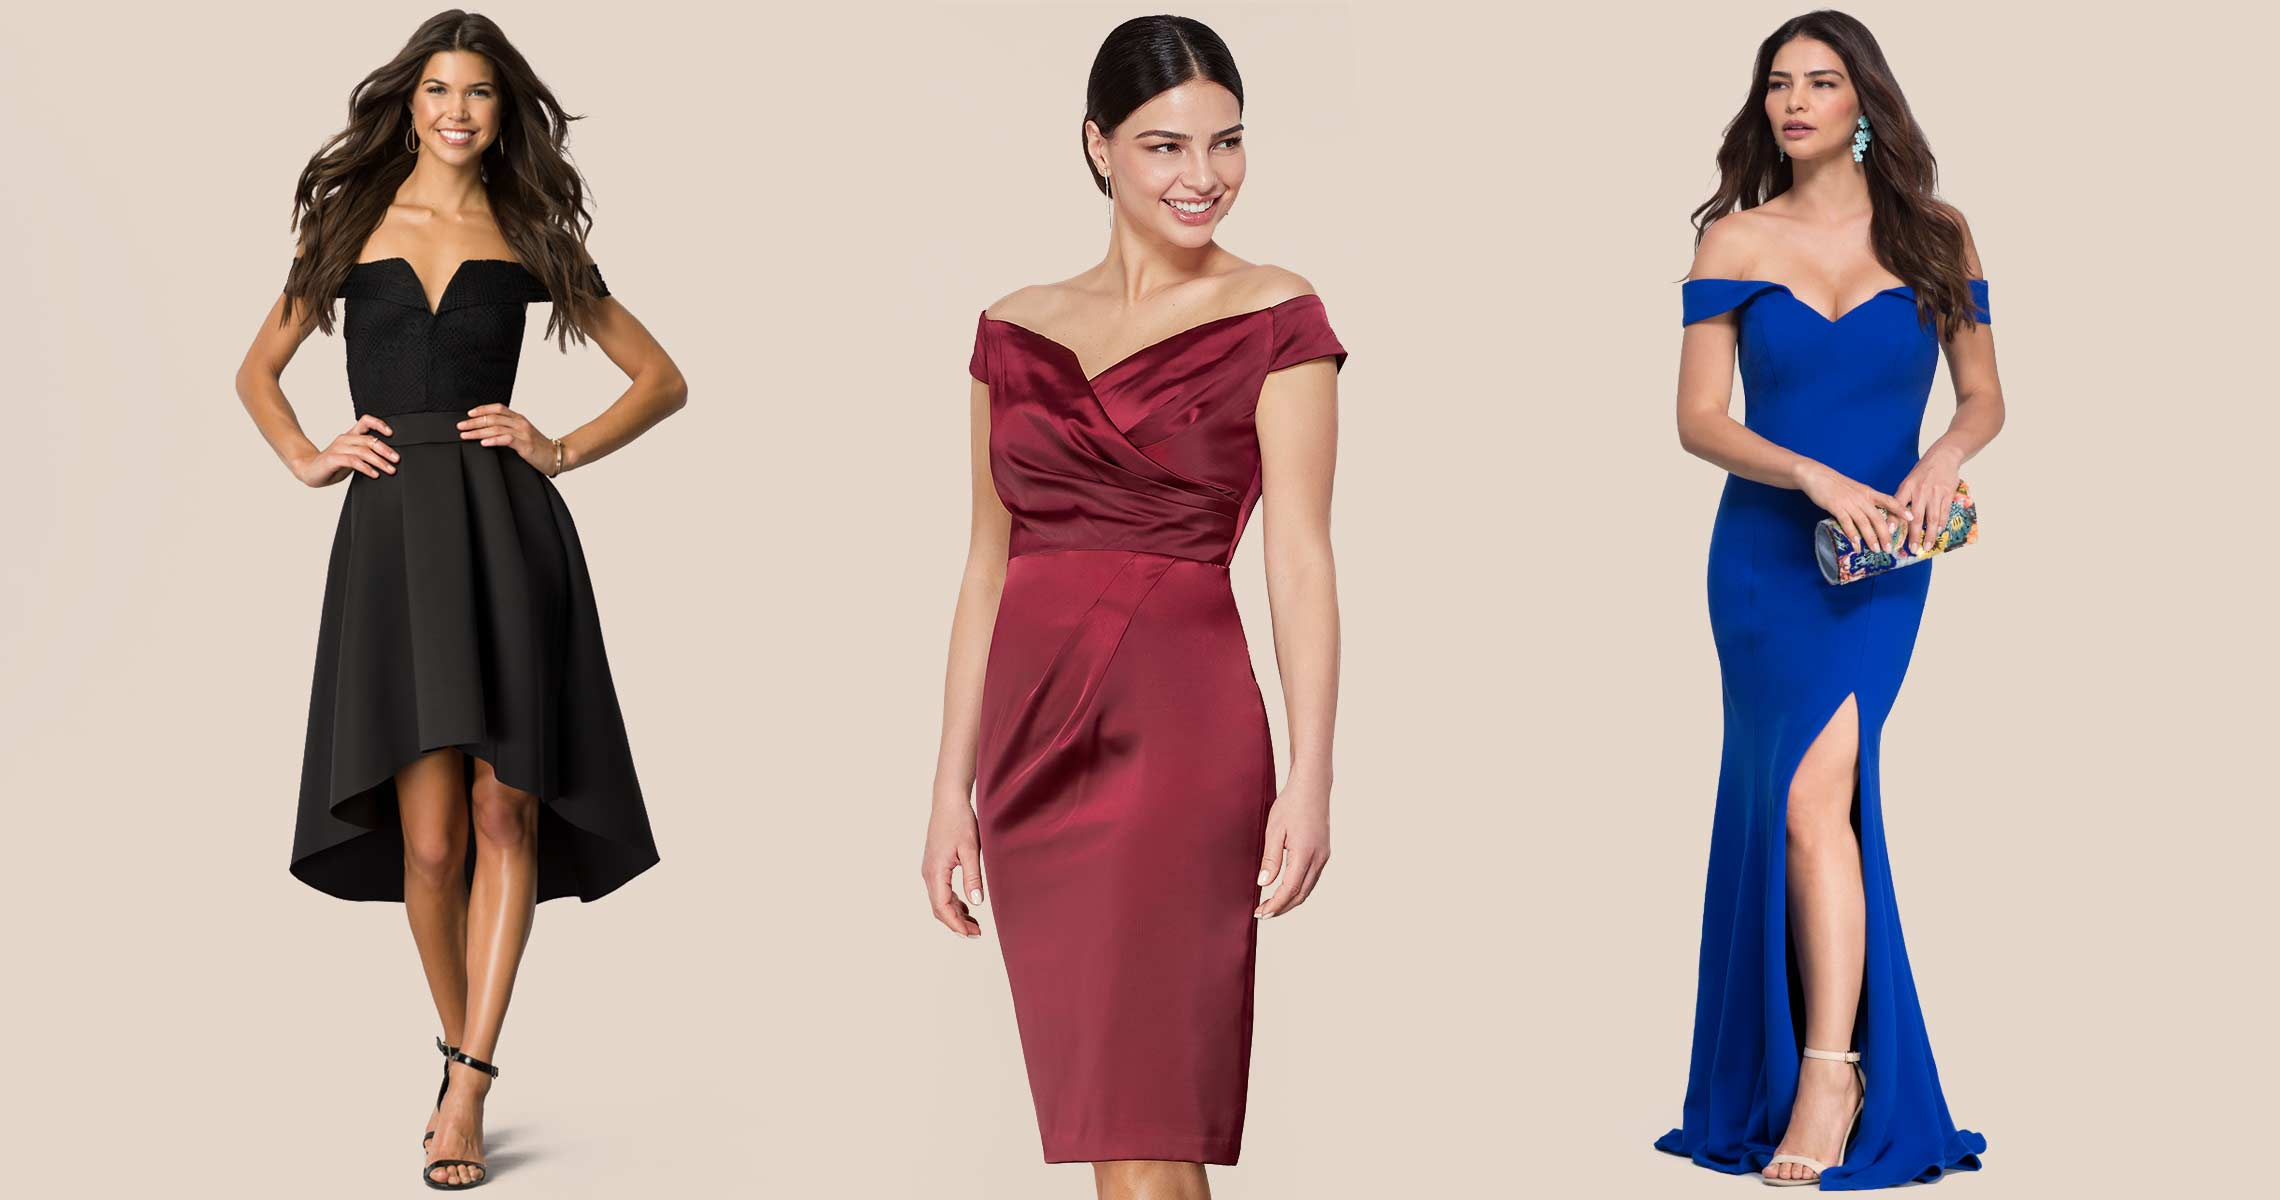 Accessorize Cocktail Dresses